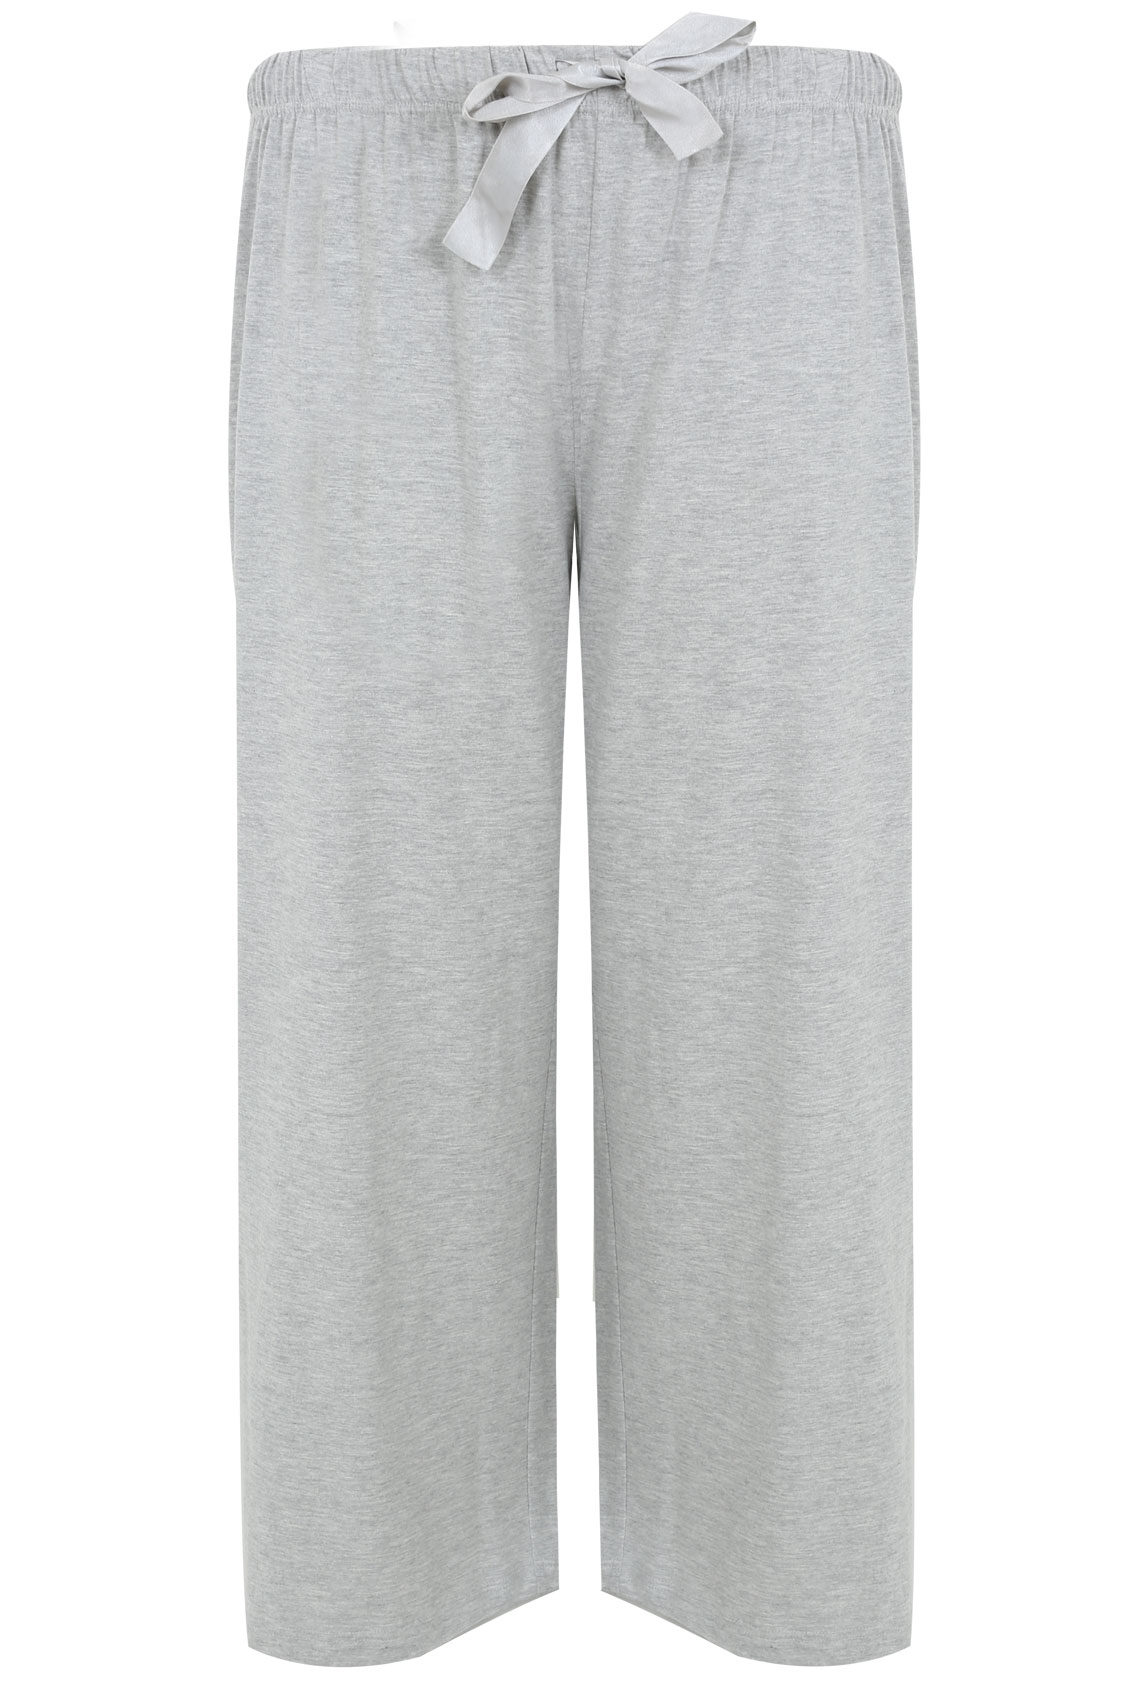 Grey Basic Cotton Pyjama Bottoms Plus Size 16 To 32-4159